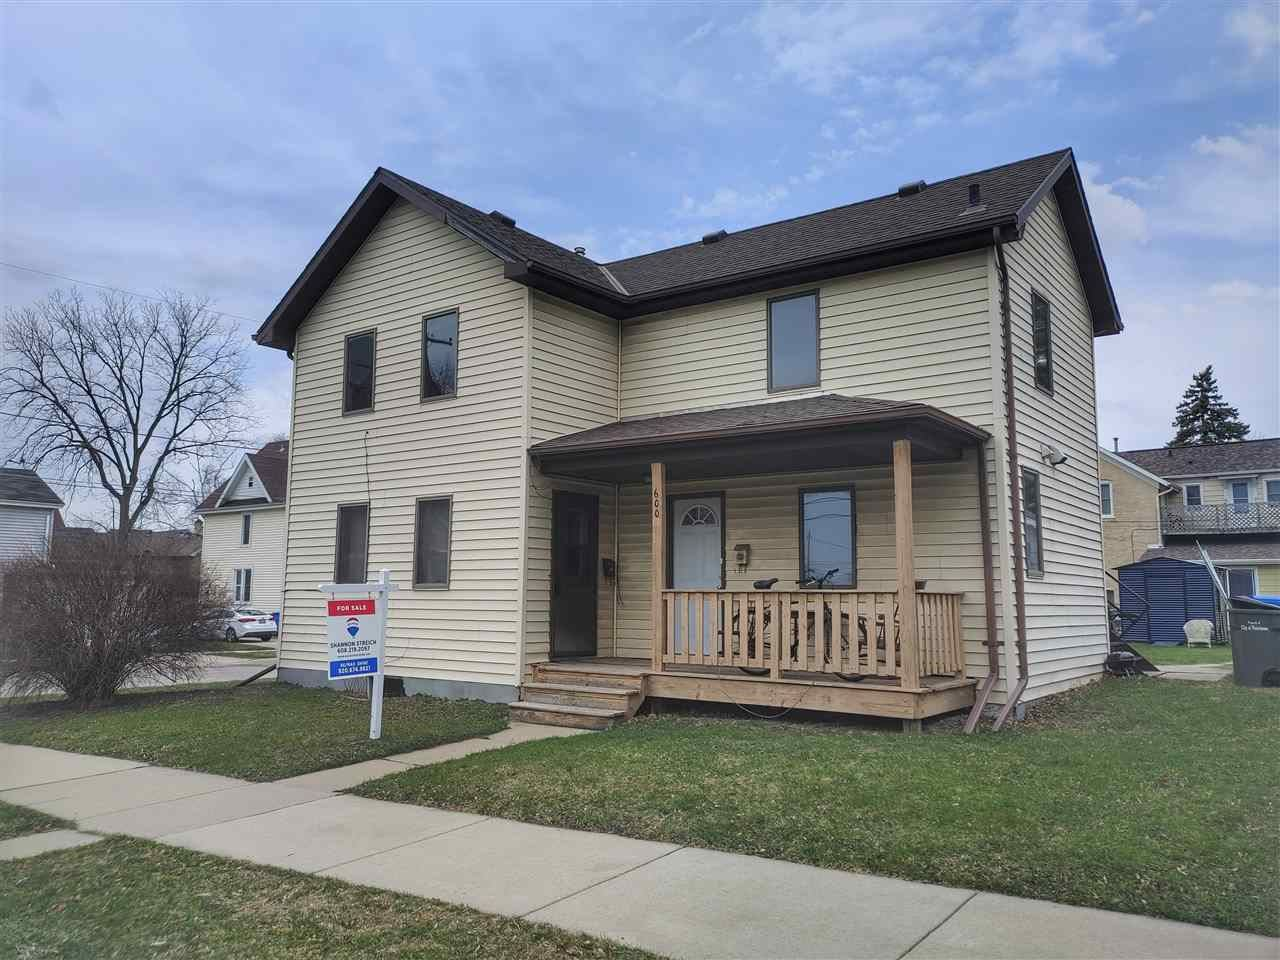 600 E Cady St, Watertown, WI 53094 - #: 1902215